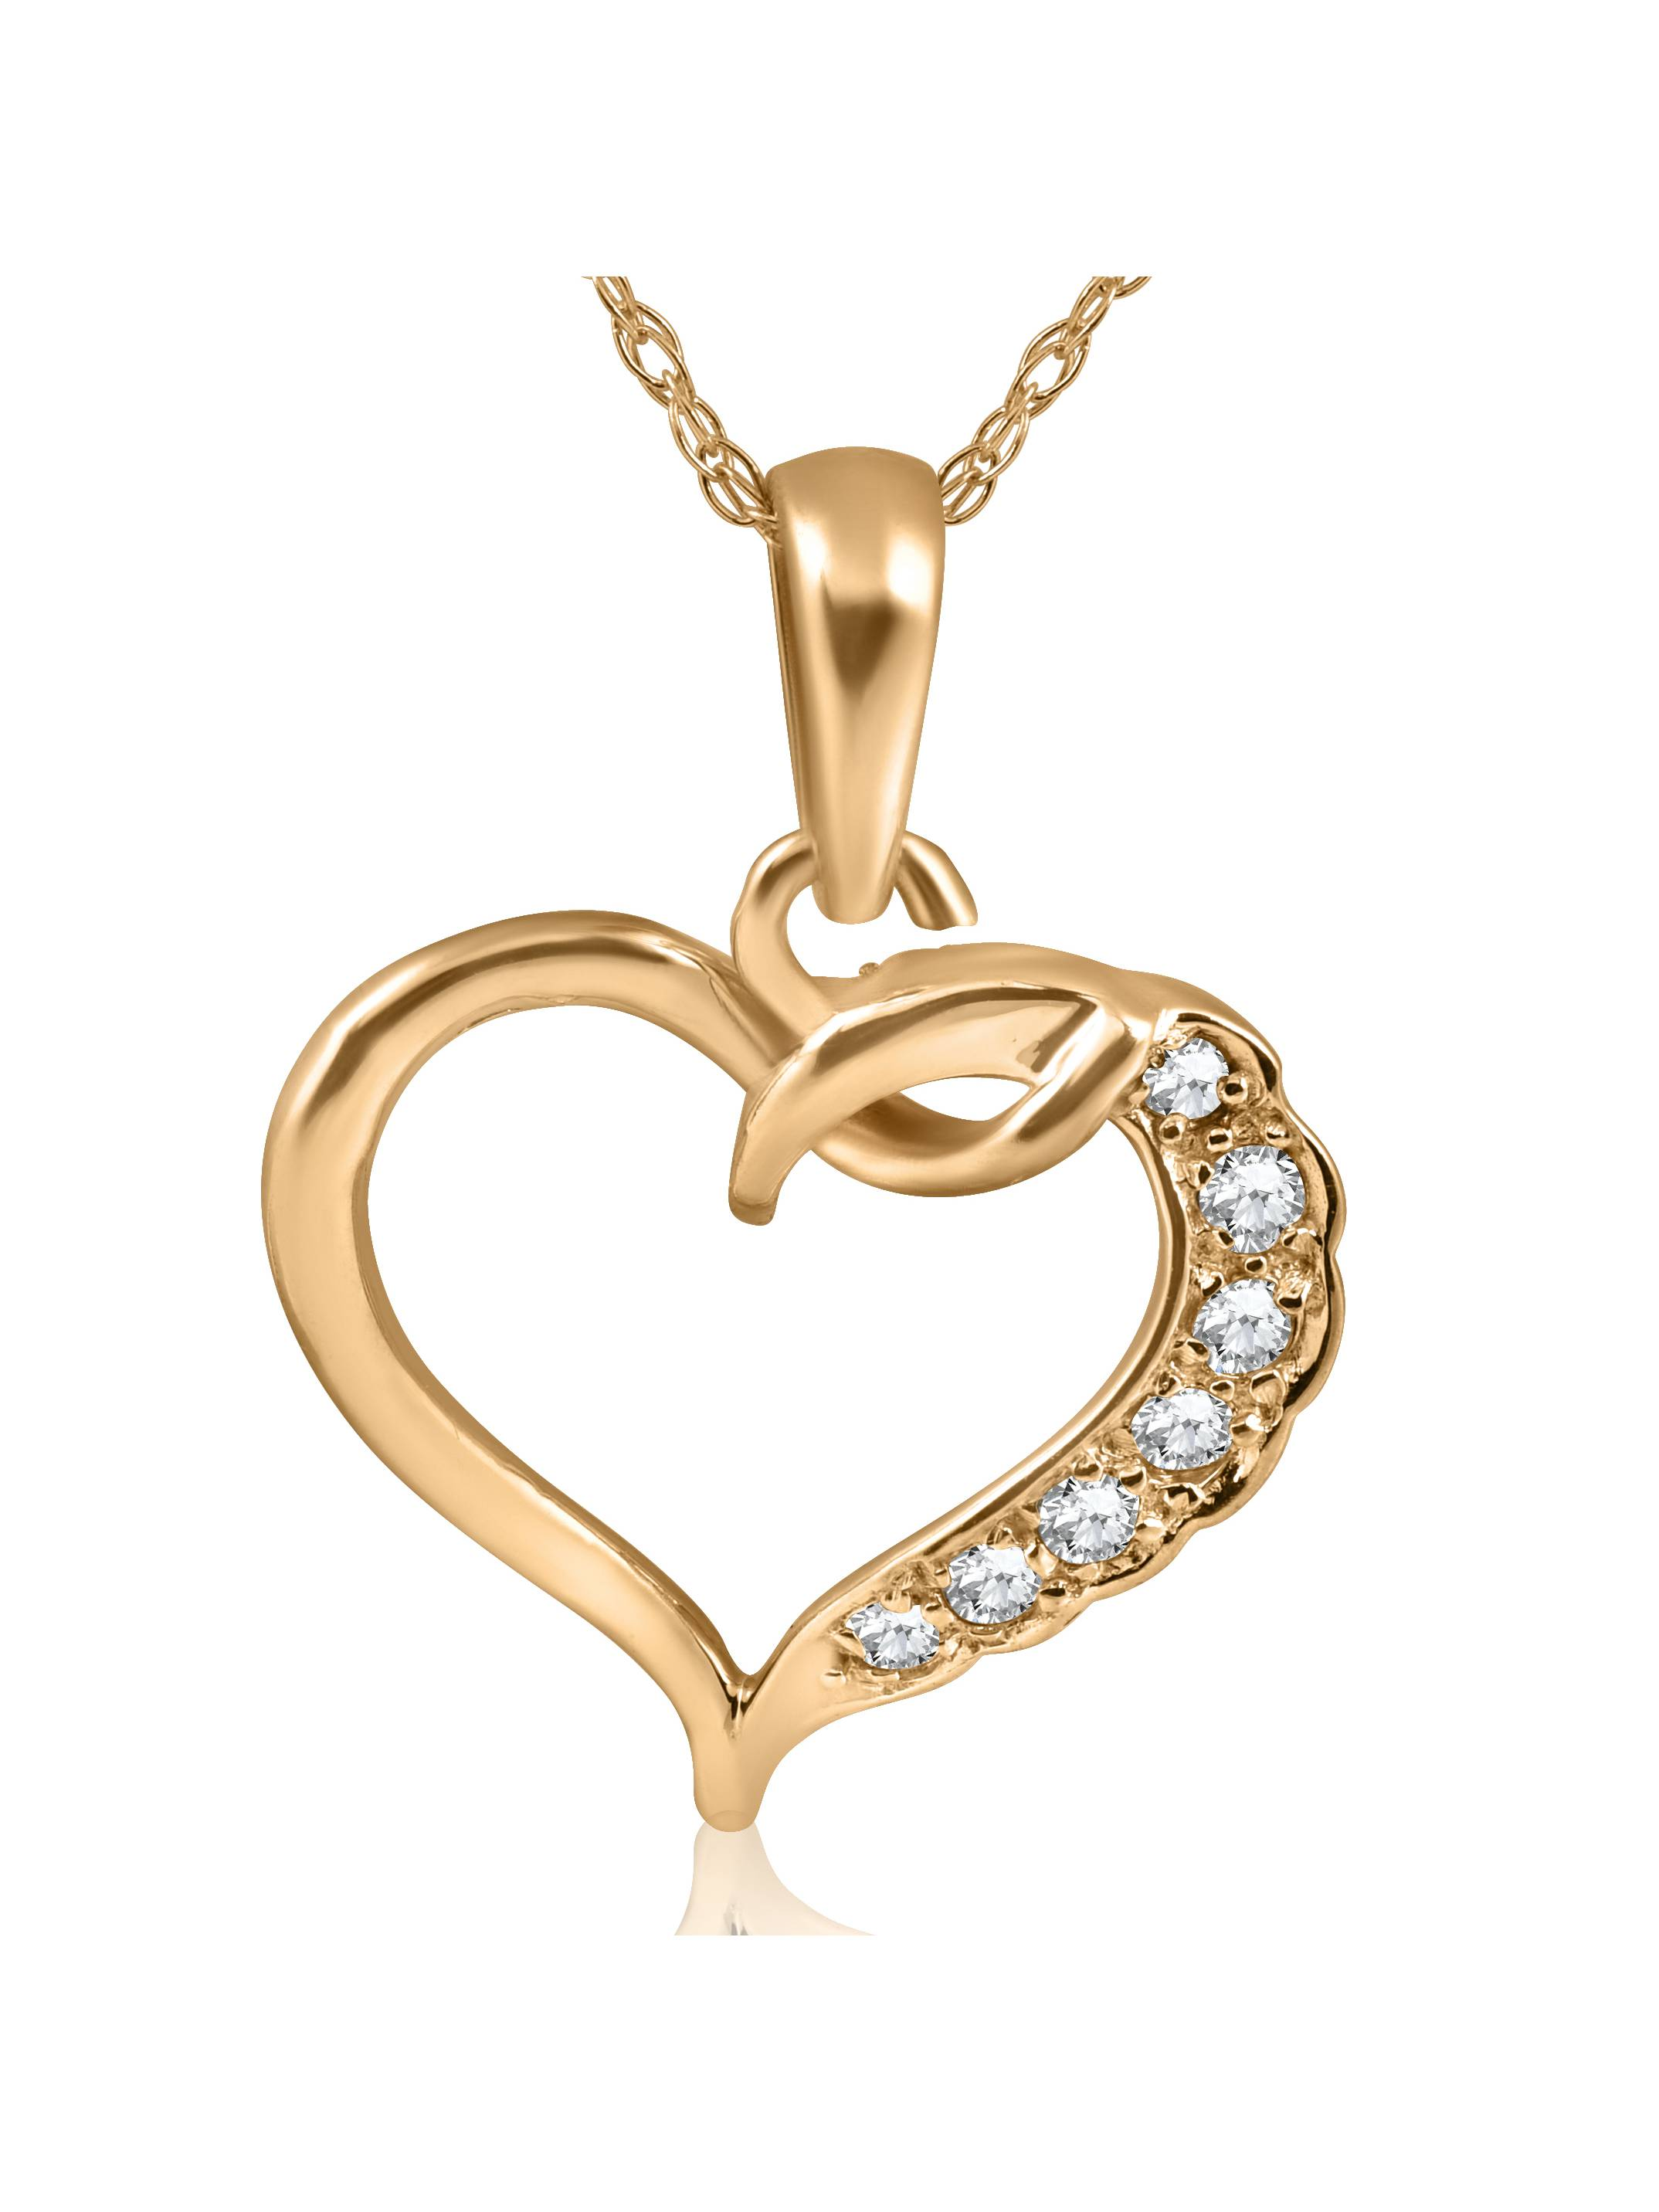 1 5ct Diamond Heart Pendant 14K Yellow Gold by Pompeii3